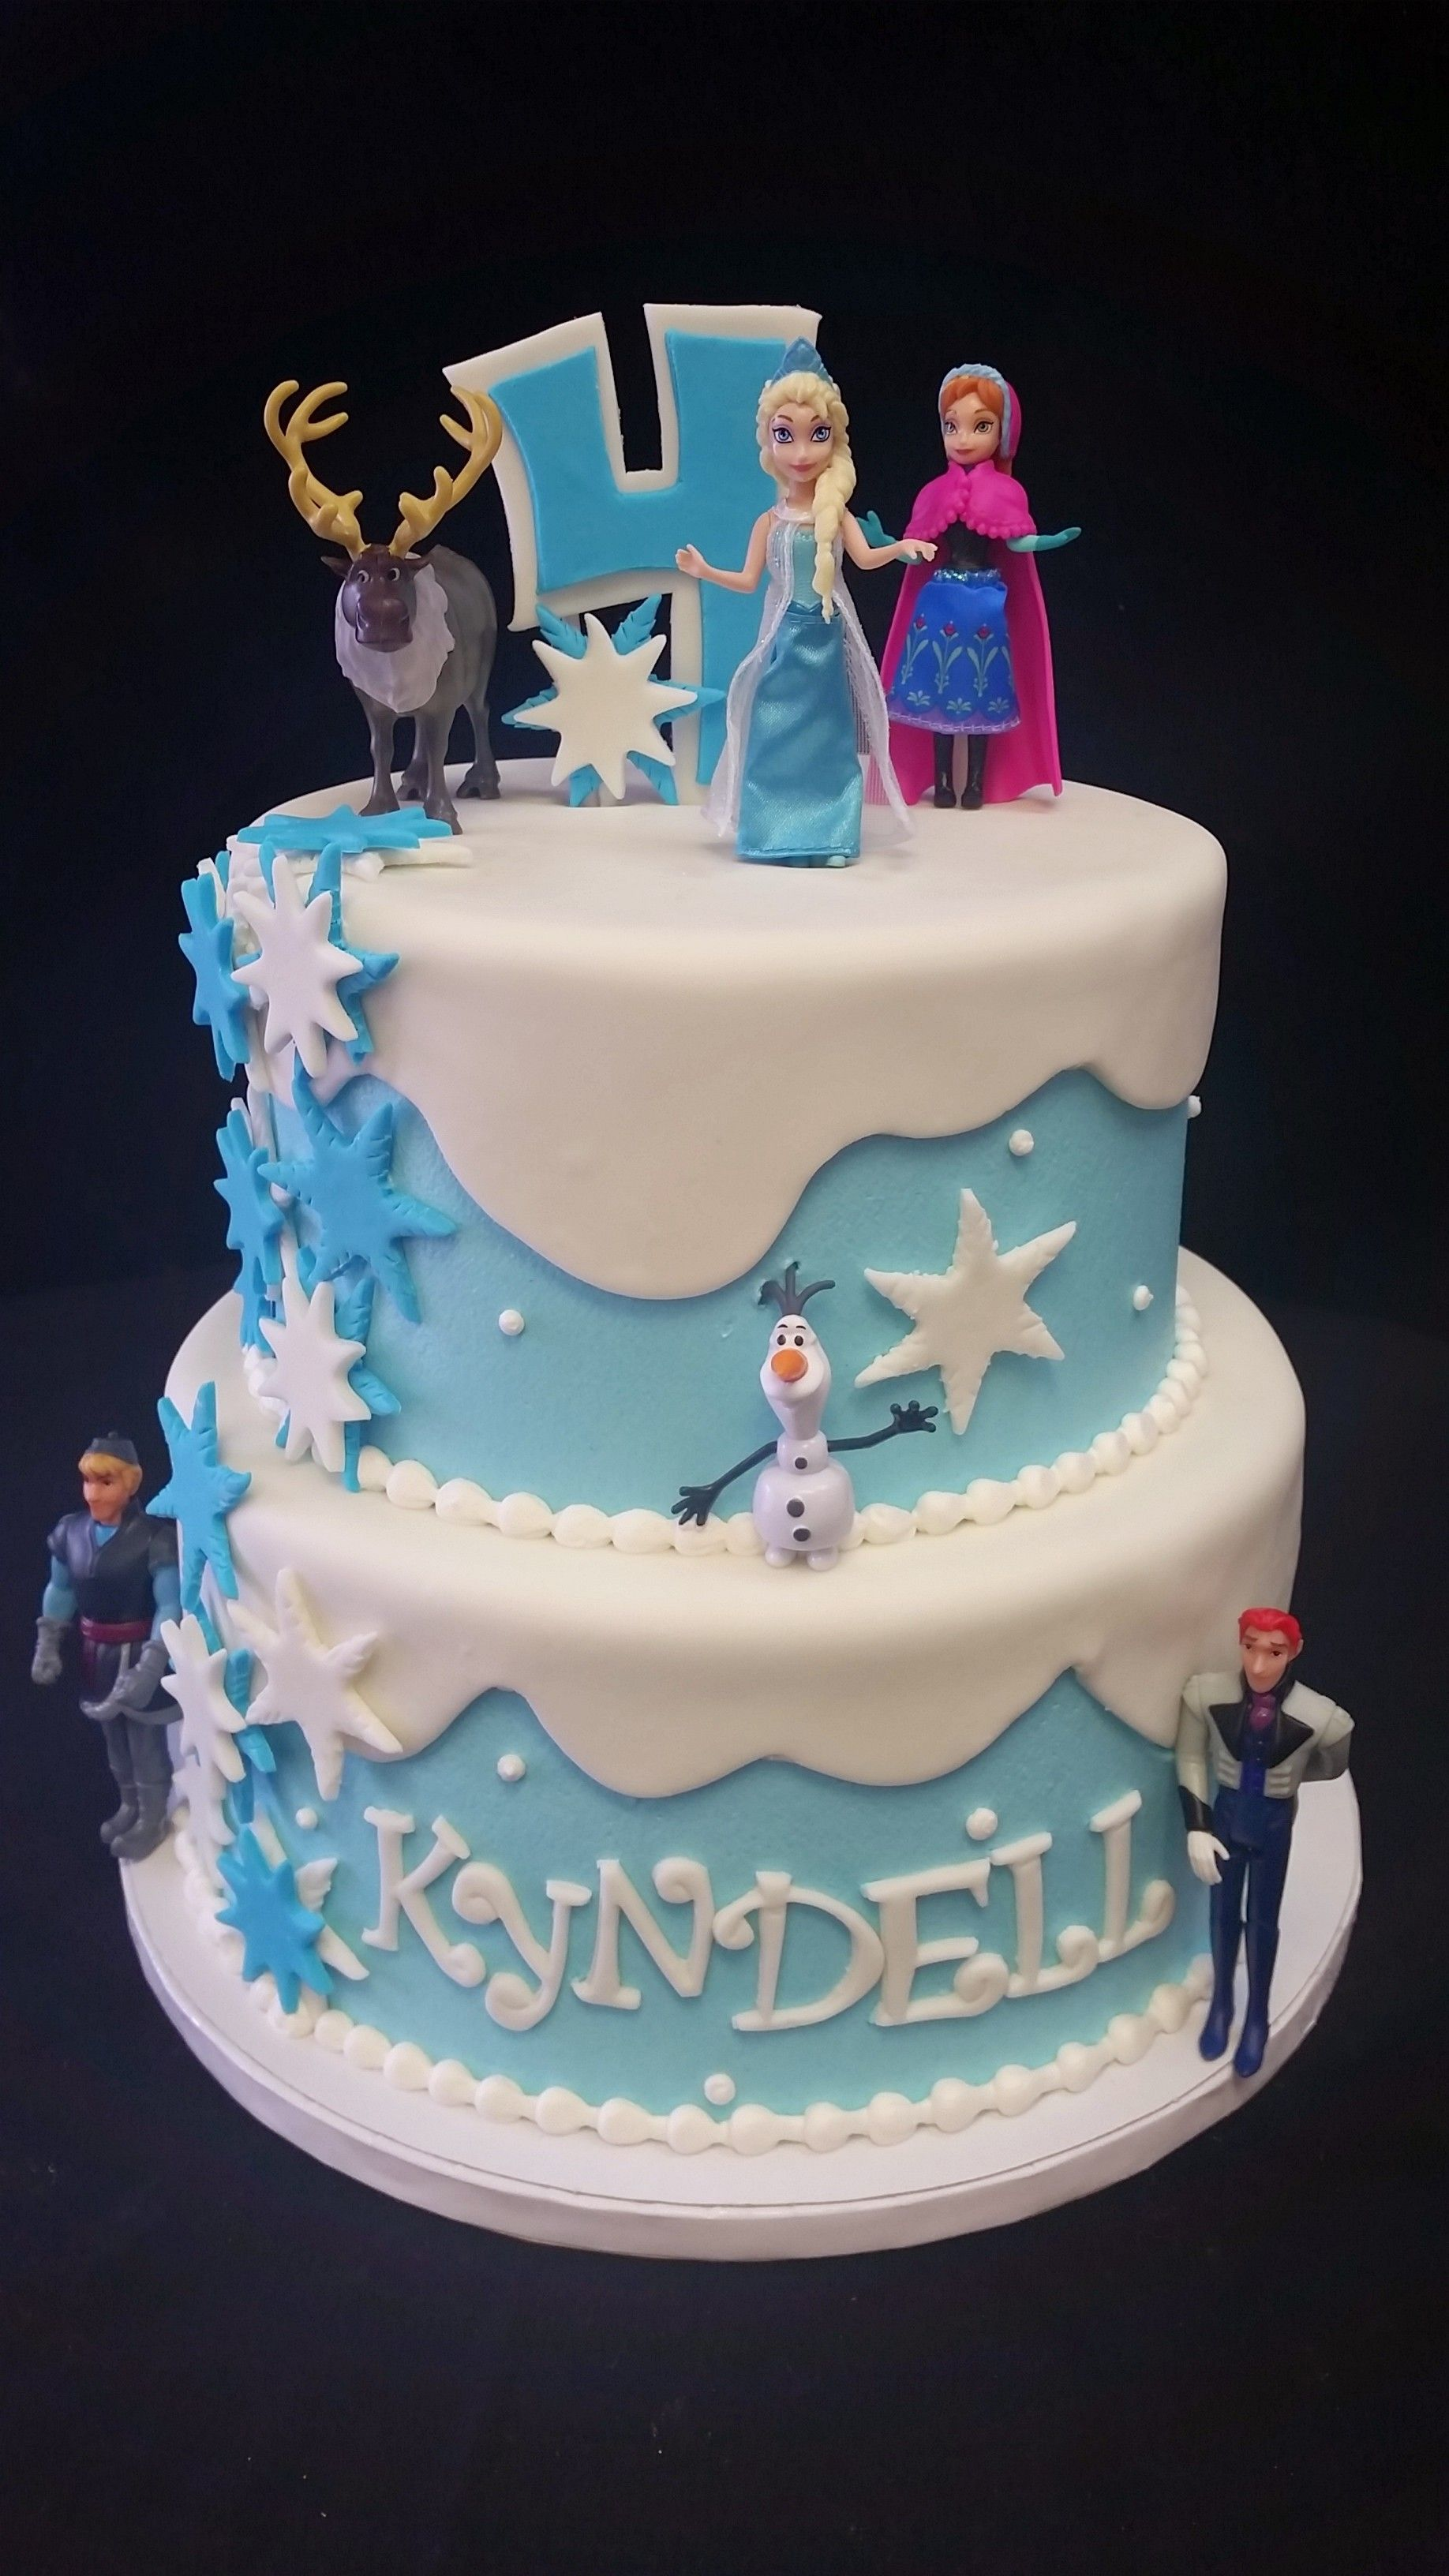 Cookie Jar Bakeshop I Frozen Birthday Cake I Elsa Olaf Ana I Cakes